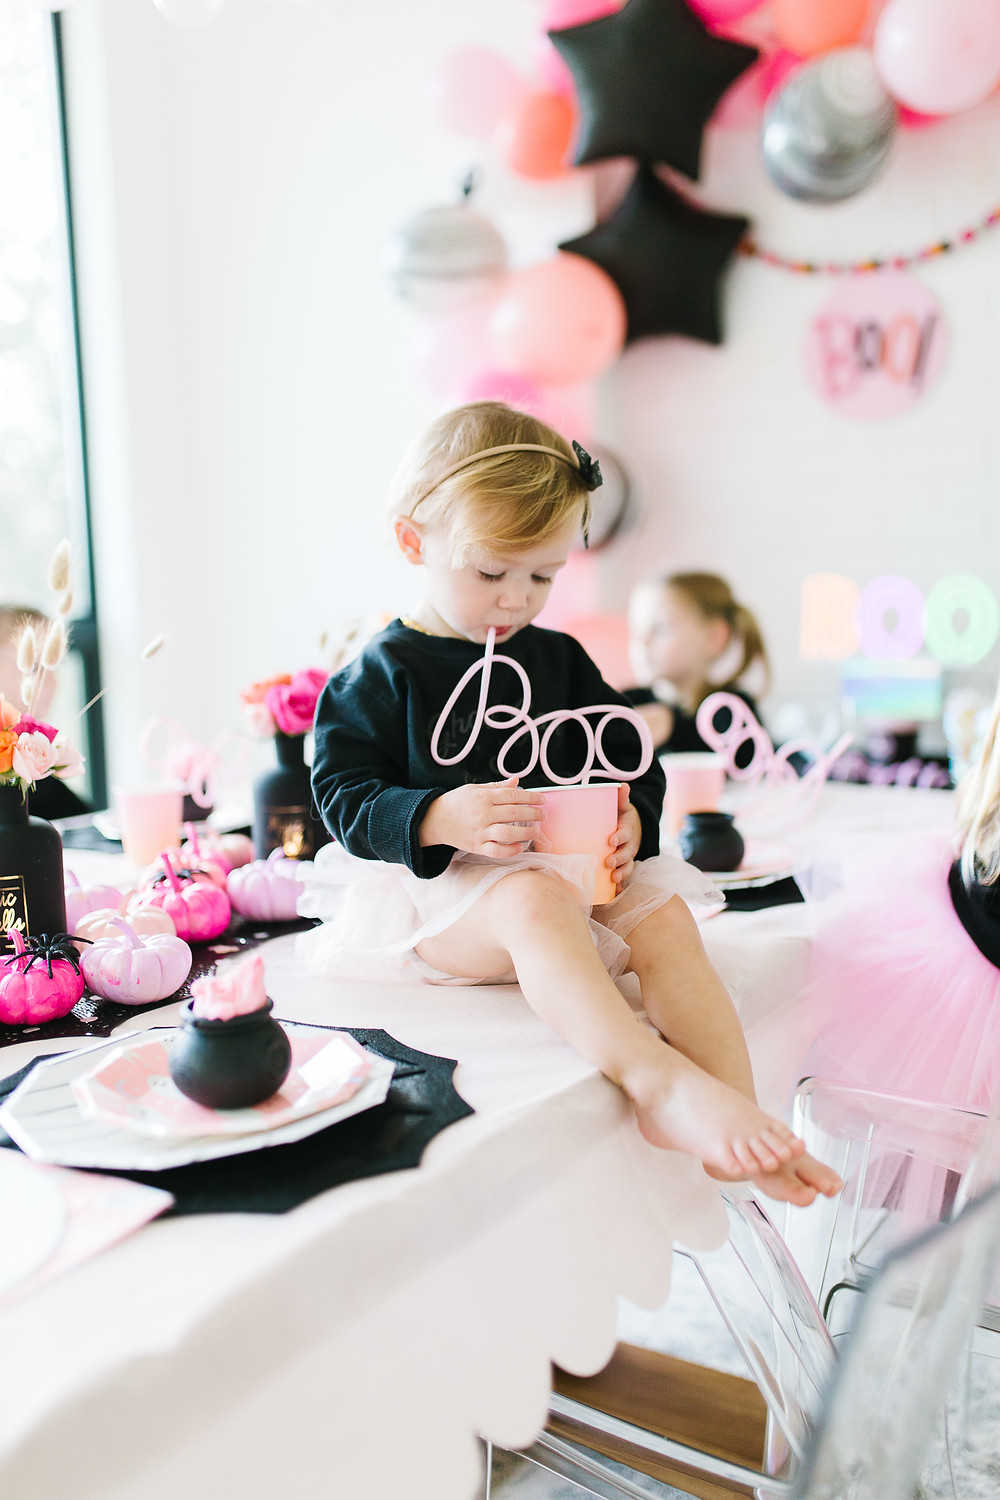 A baby sitting on a table drinking out of a BOO straw at a Halloween party with pink and black pumpkins.